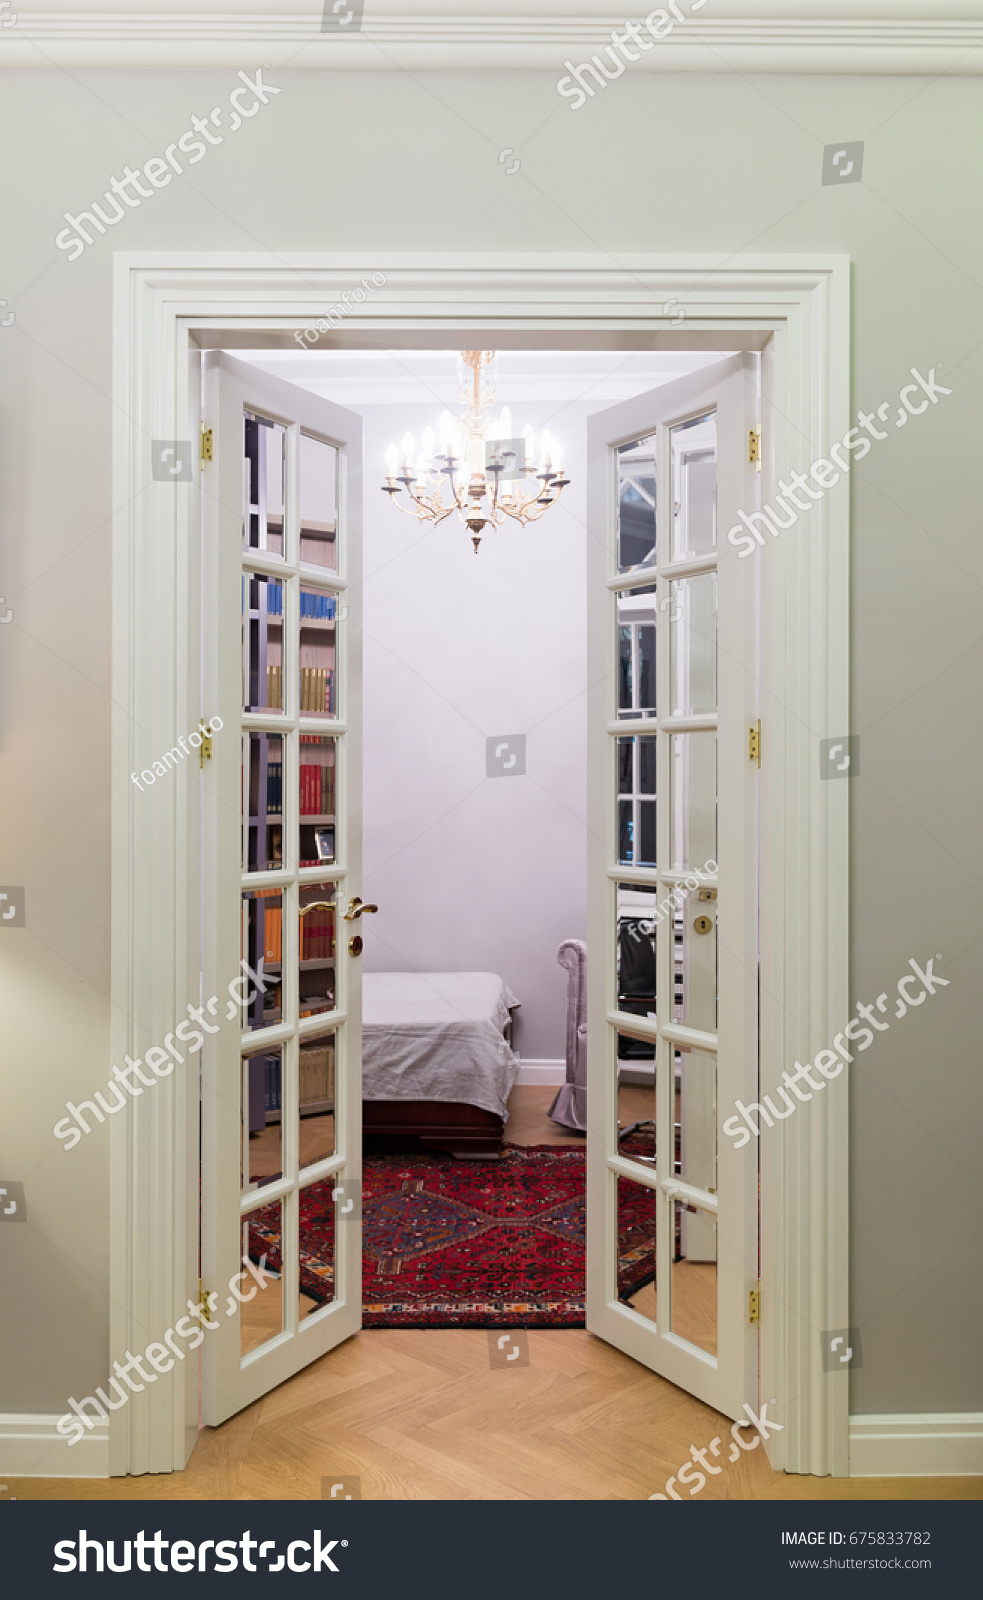 Double Leaf Door Mirrors Living Room Stock Photo (Royalty Free ...